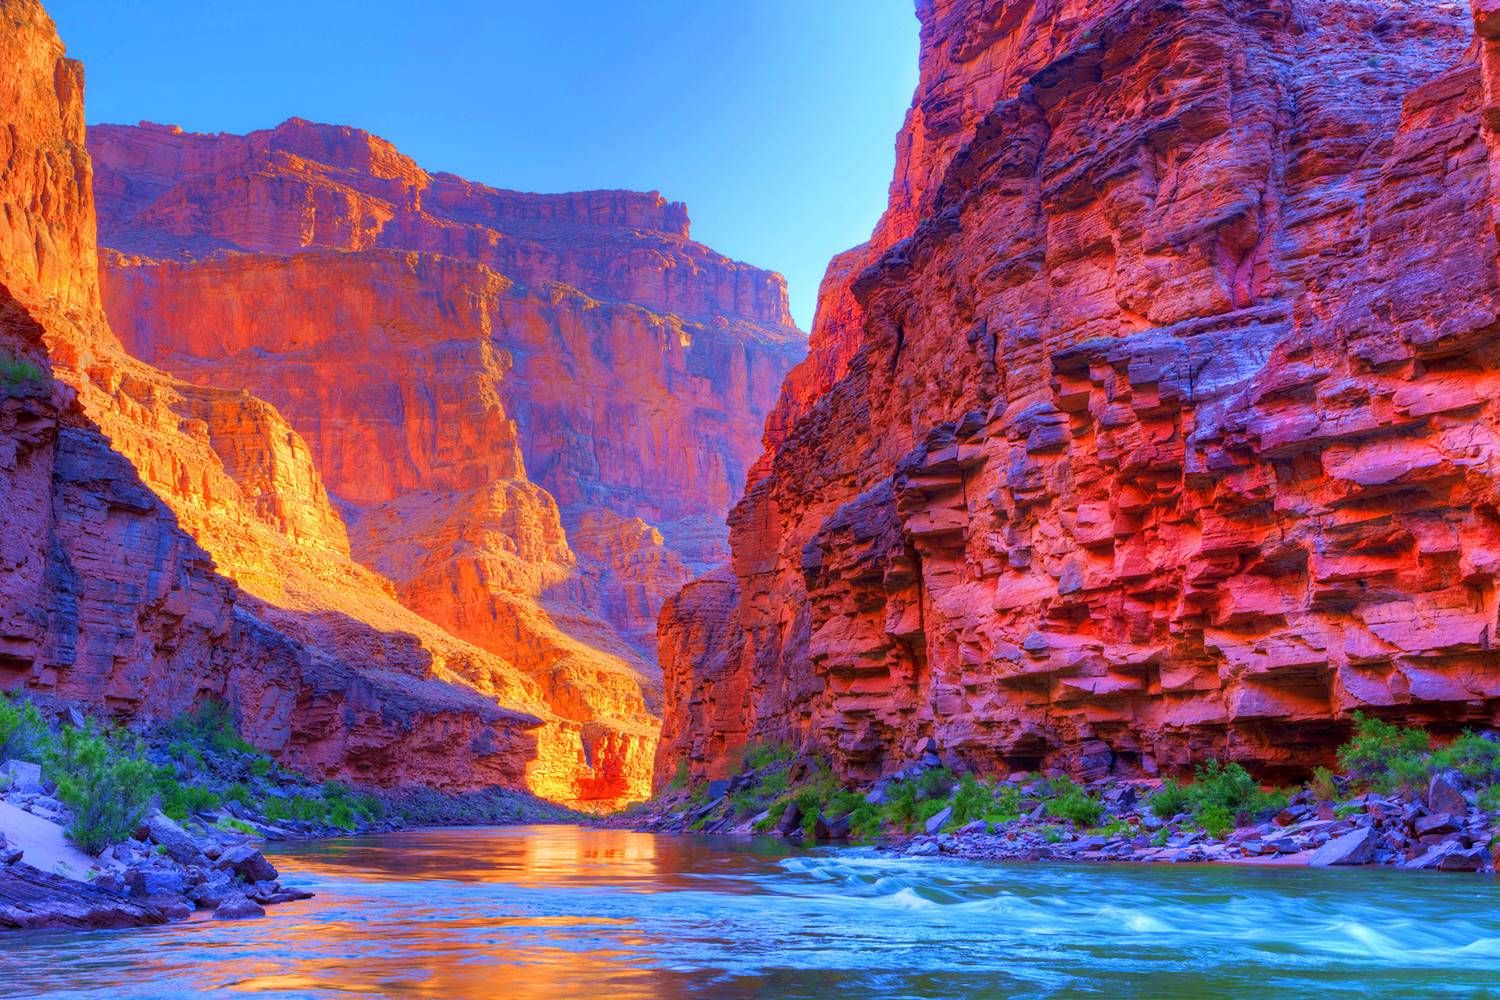 7-Day Grand Canyon, Yosemite Tour with LAX Airport Transfer (Starts/Ends in LA)